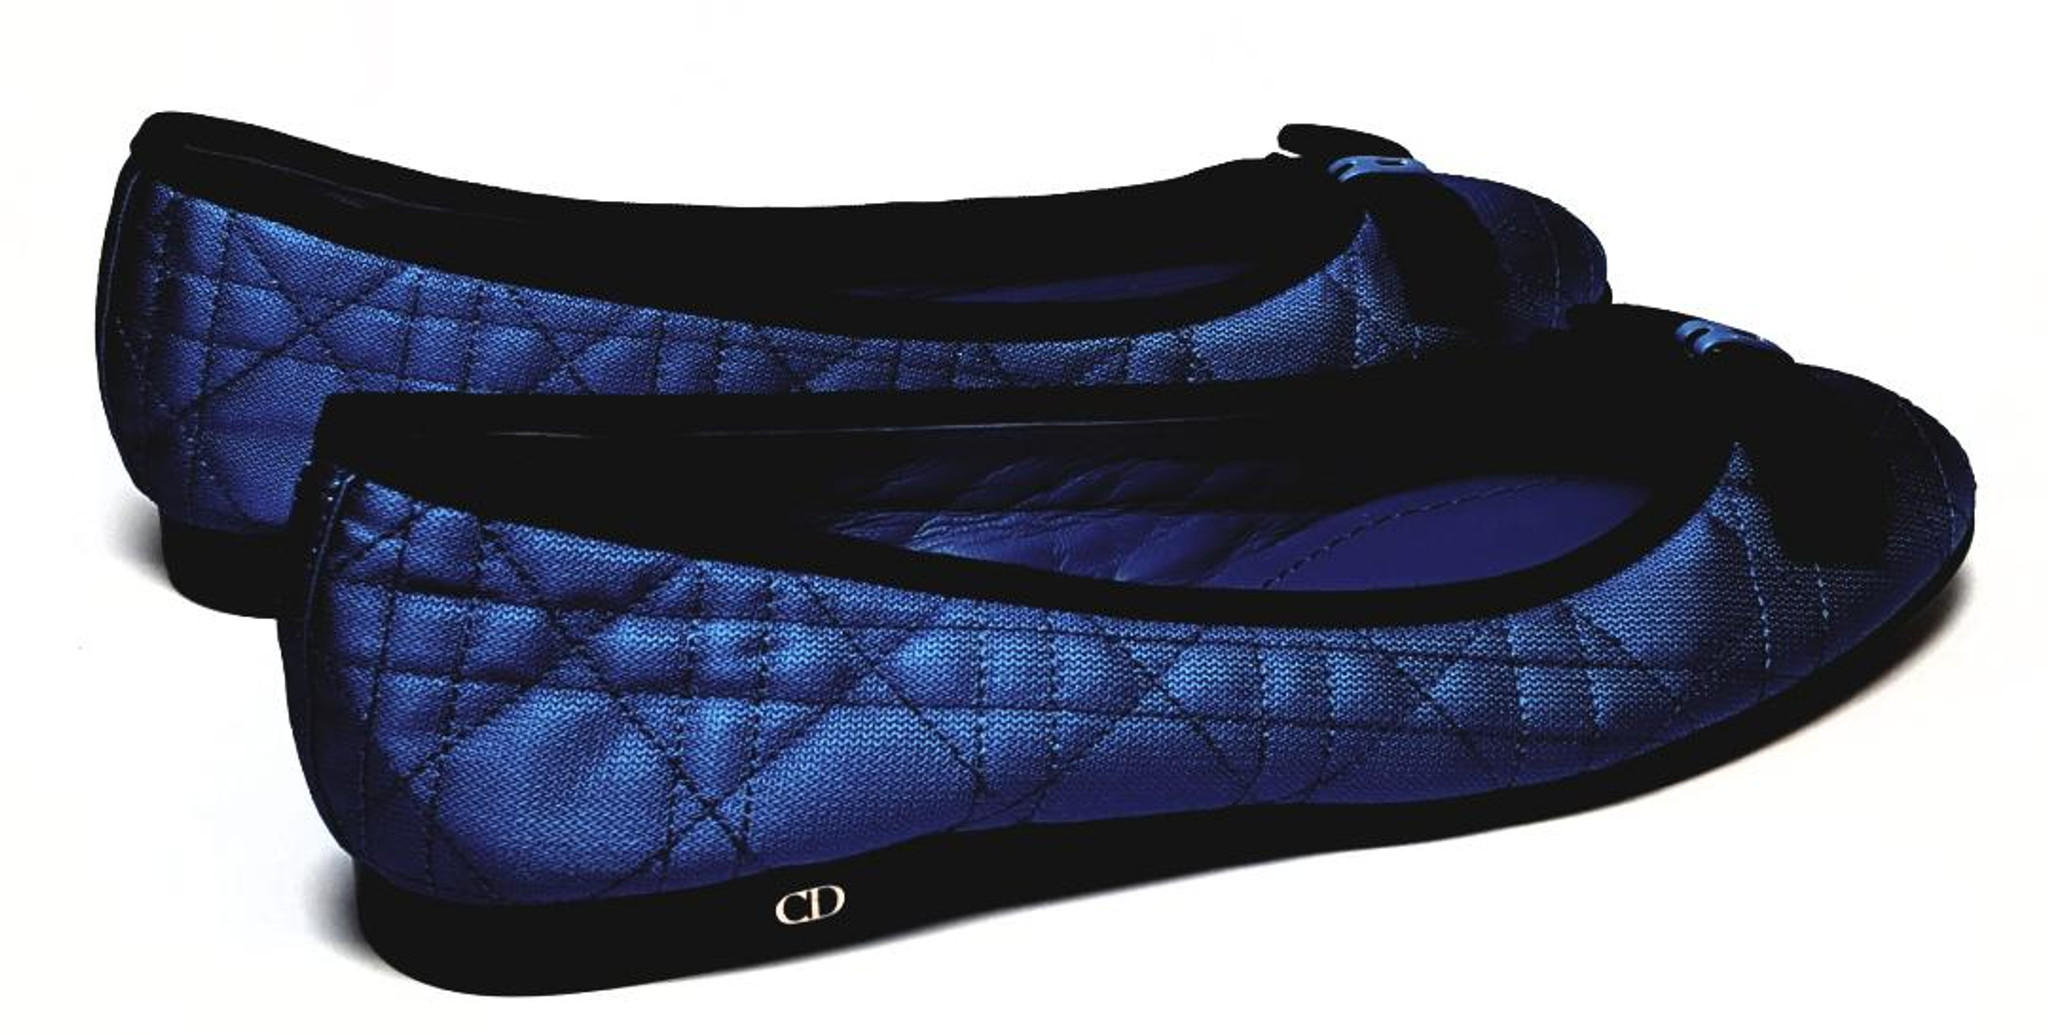 012c6757 Christian Dior Quilted Satin Royal Blue with a Black Bow Ballet Flats -  Size US 8 - New